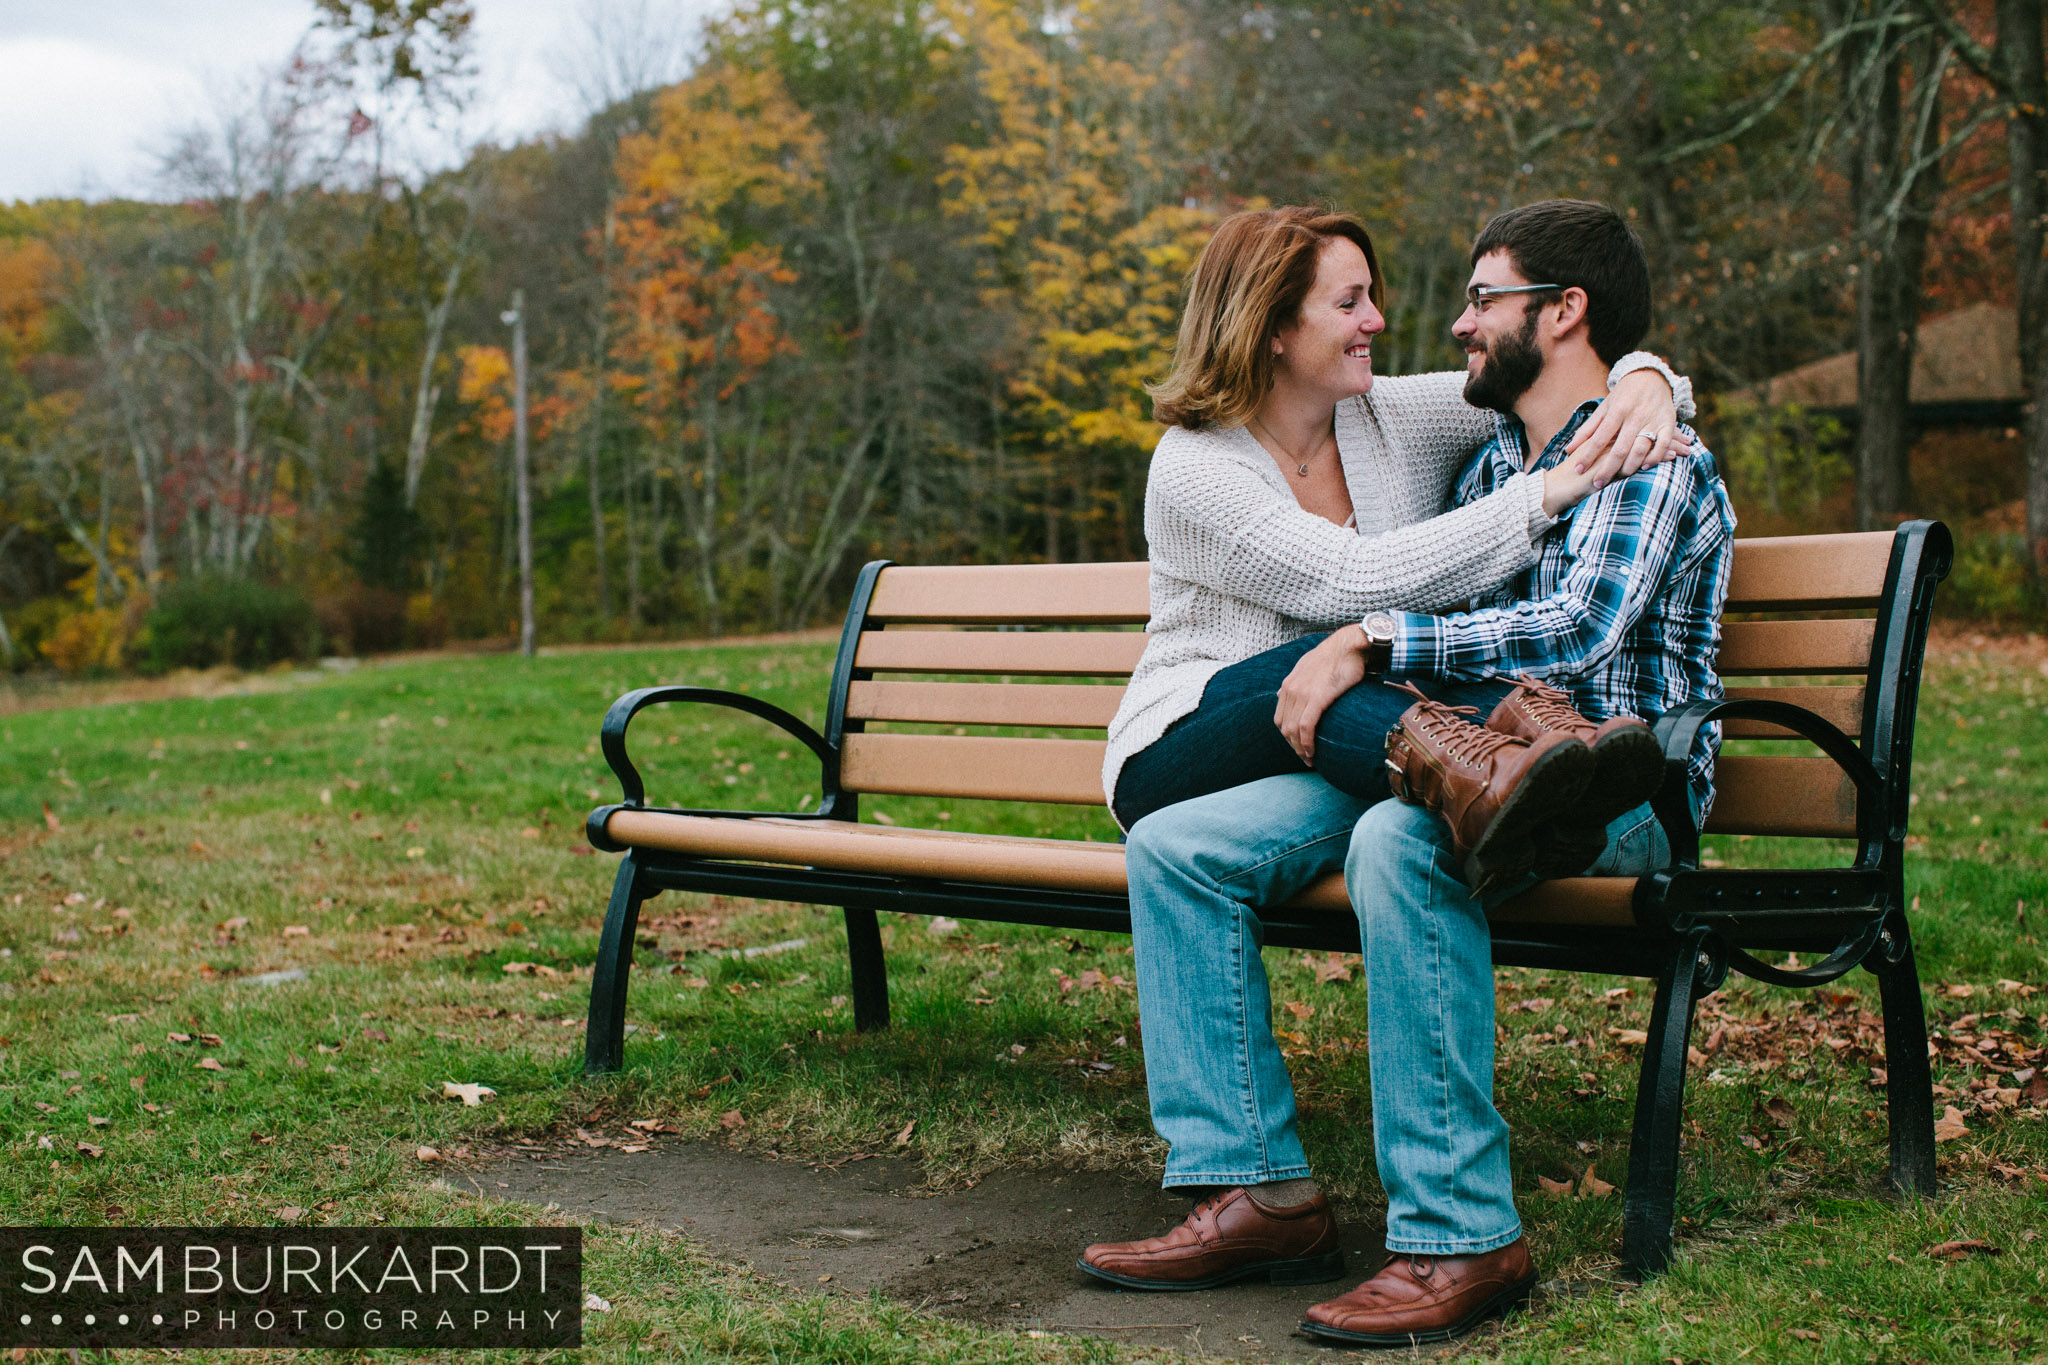 samburkardt-fall-engagement-connecticut-foliage-southford-falls-state-park_0004.jpg